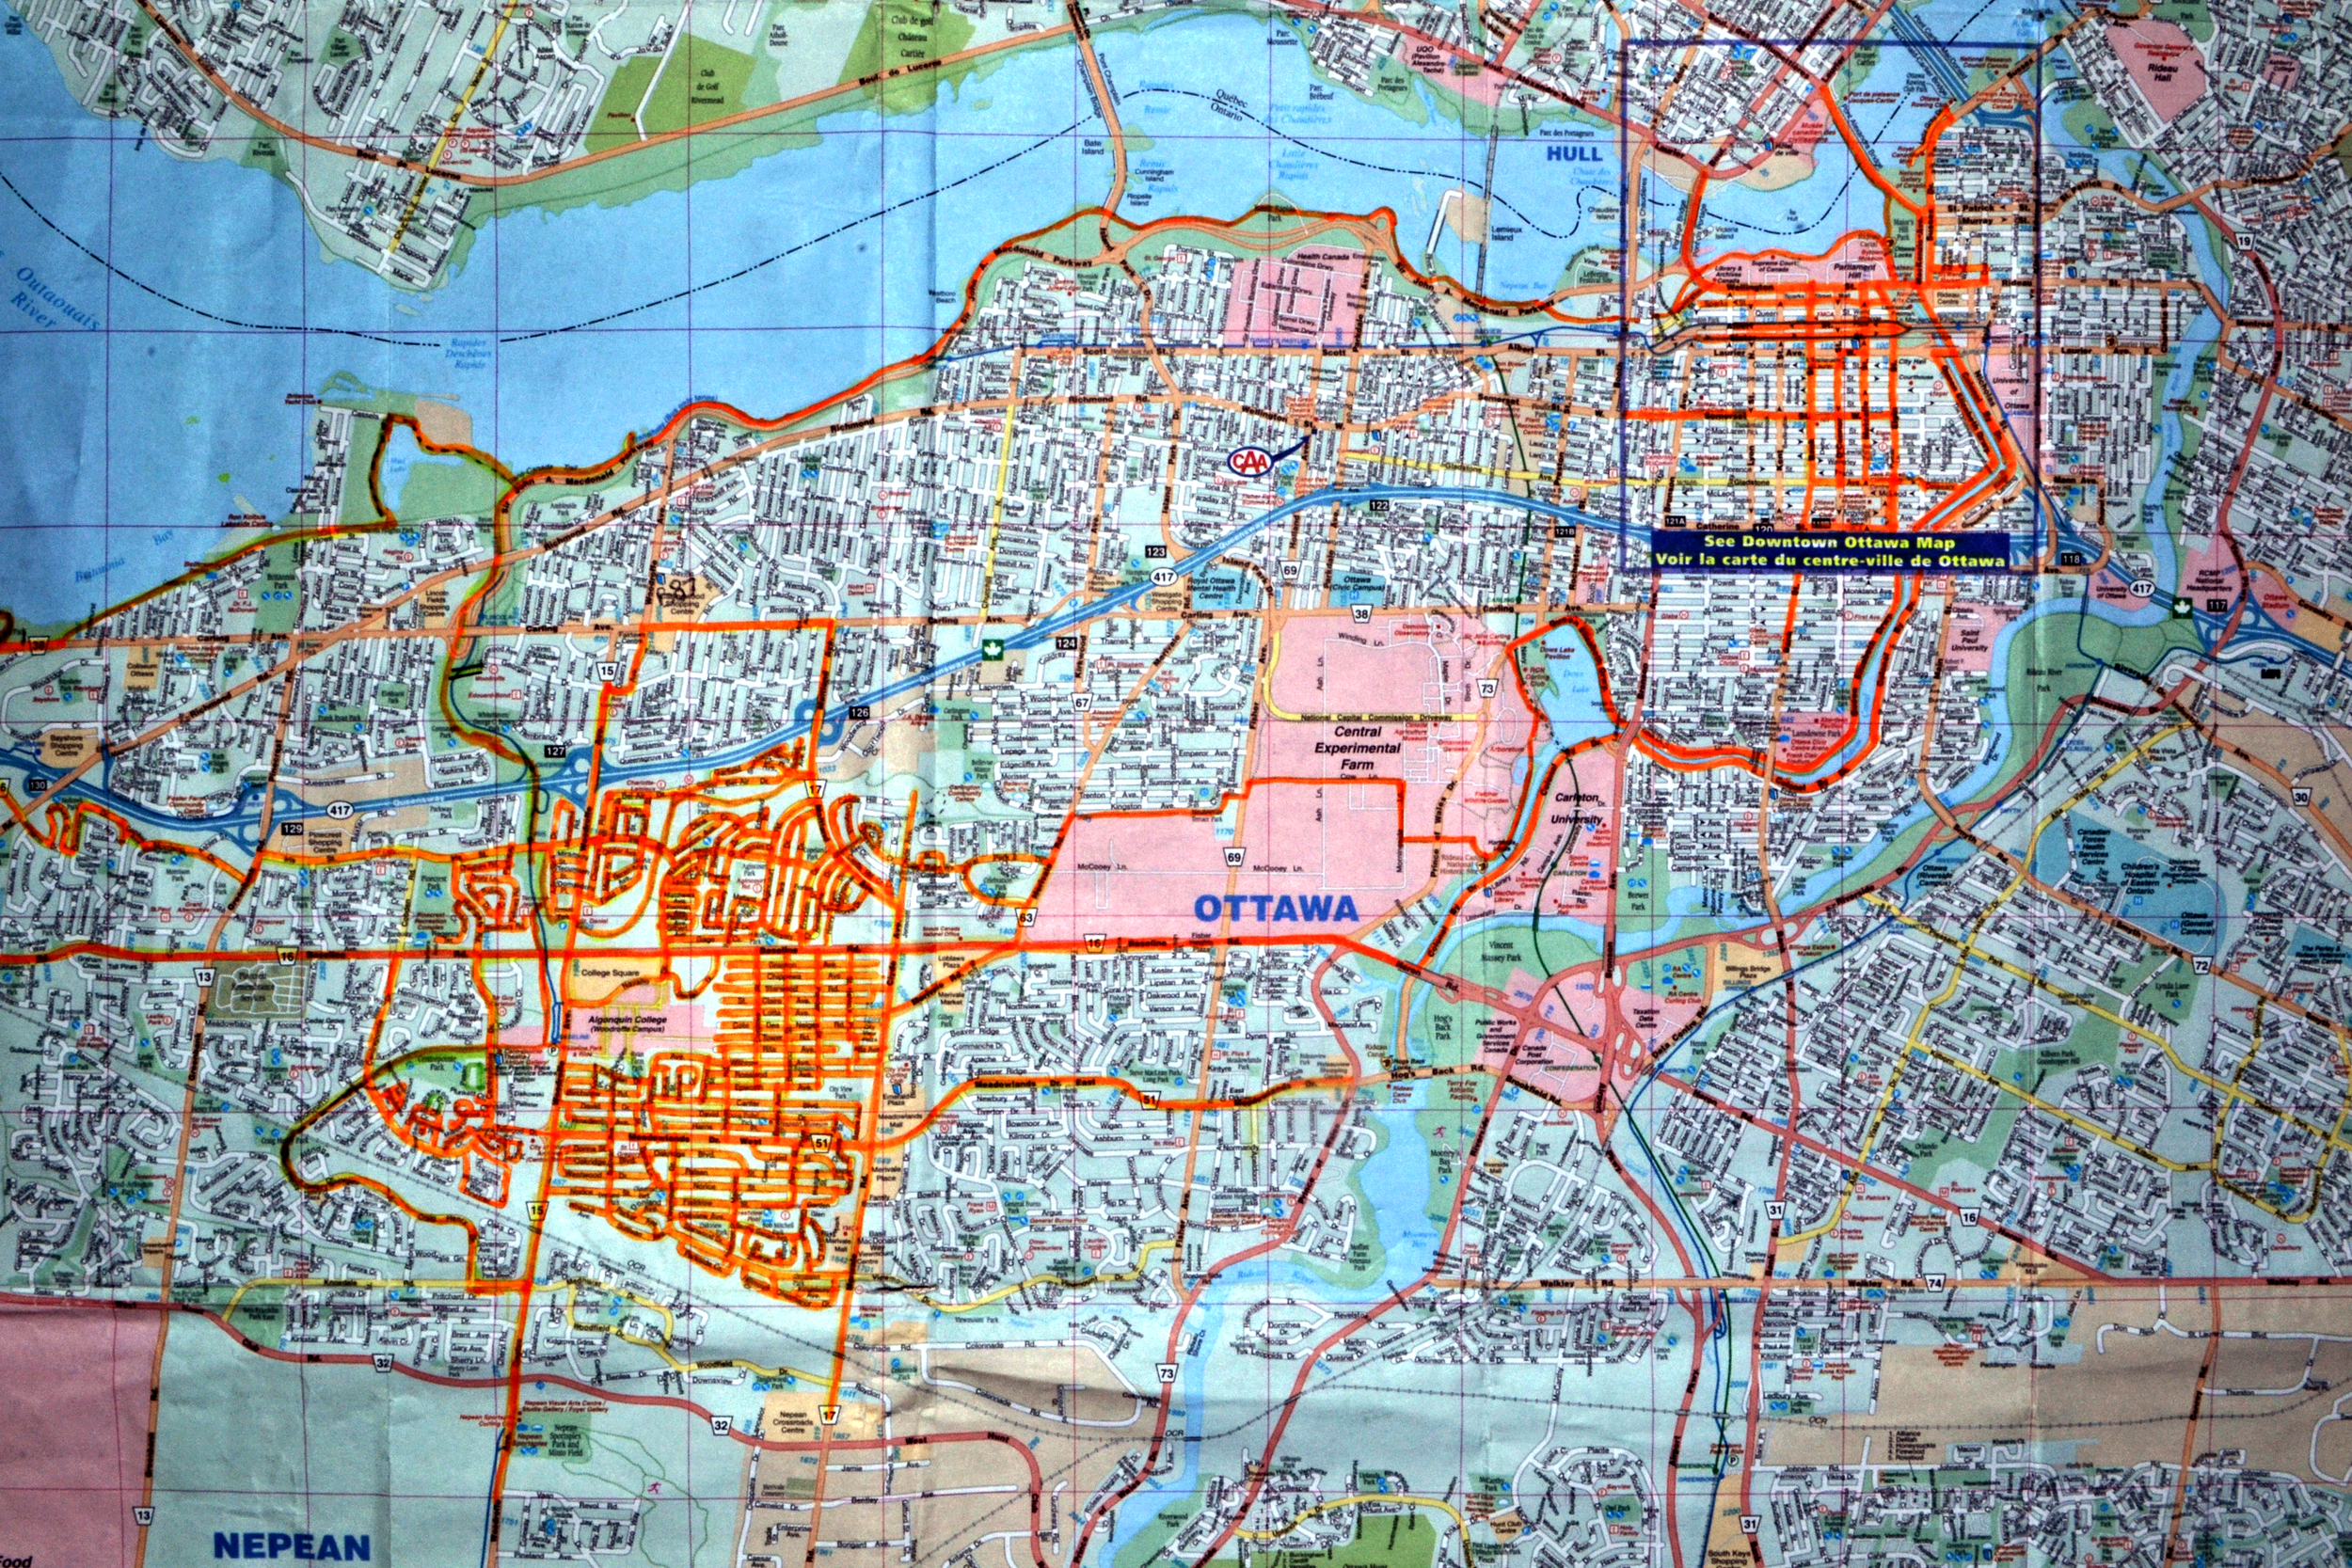 Every where that is highlighted orange is where I have been.